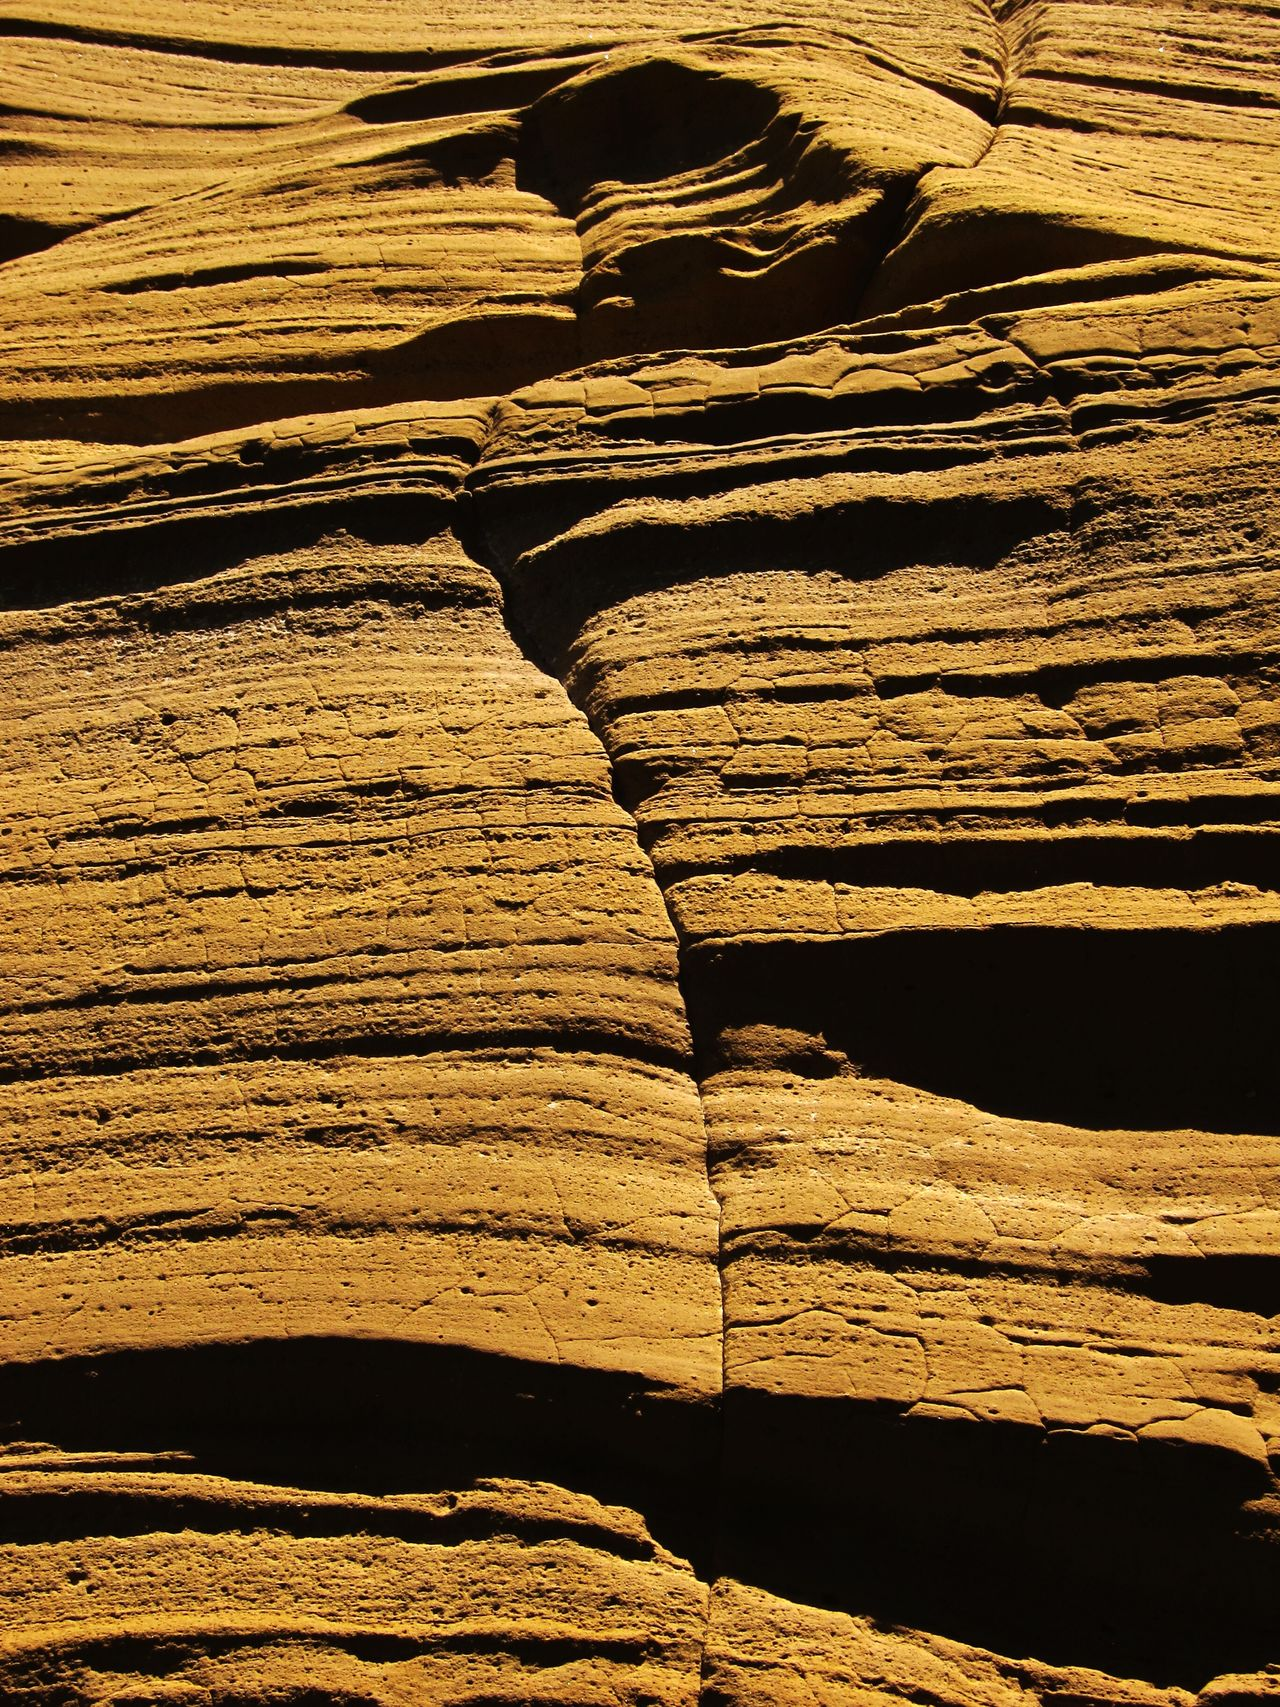 Nature Pattern Beauty In Nature Backgrounds Travel Travel Destinations Landscape Textured  Scenics Arid Climate Rippled Desert Wilderness Abstract Sand Outdoors No People Sand Dune Day Ischia Sandstone Rock Formation